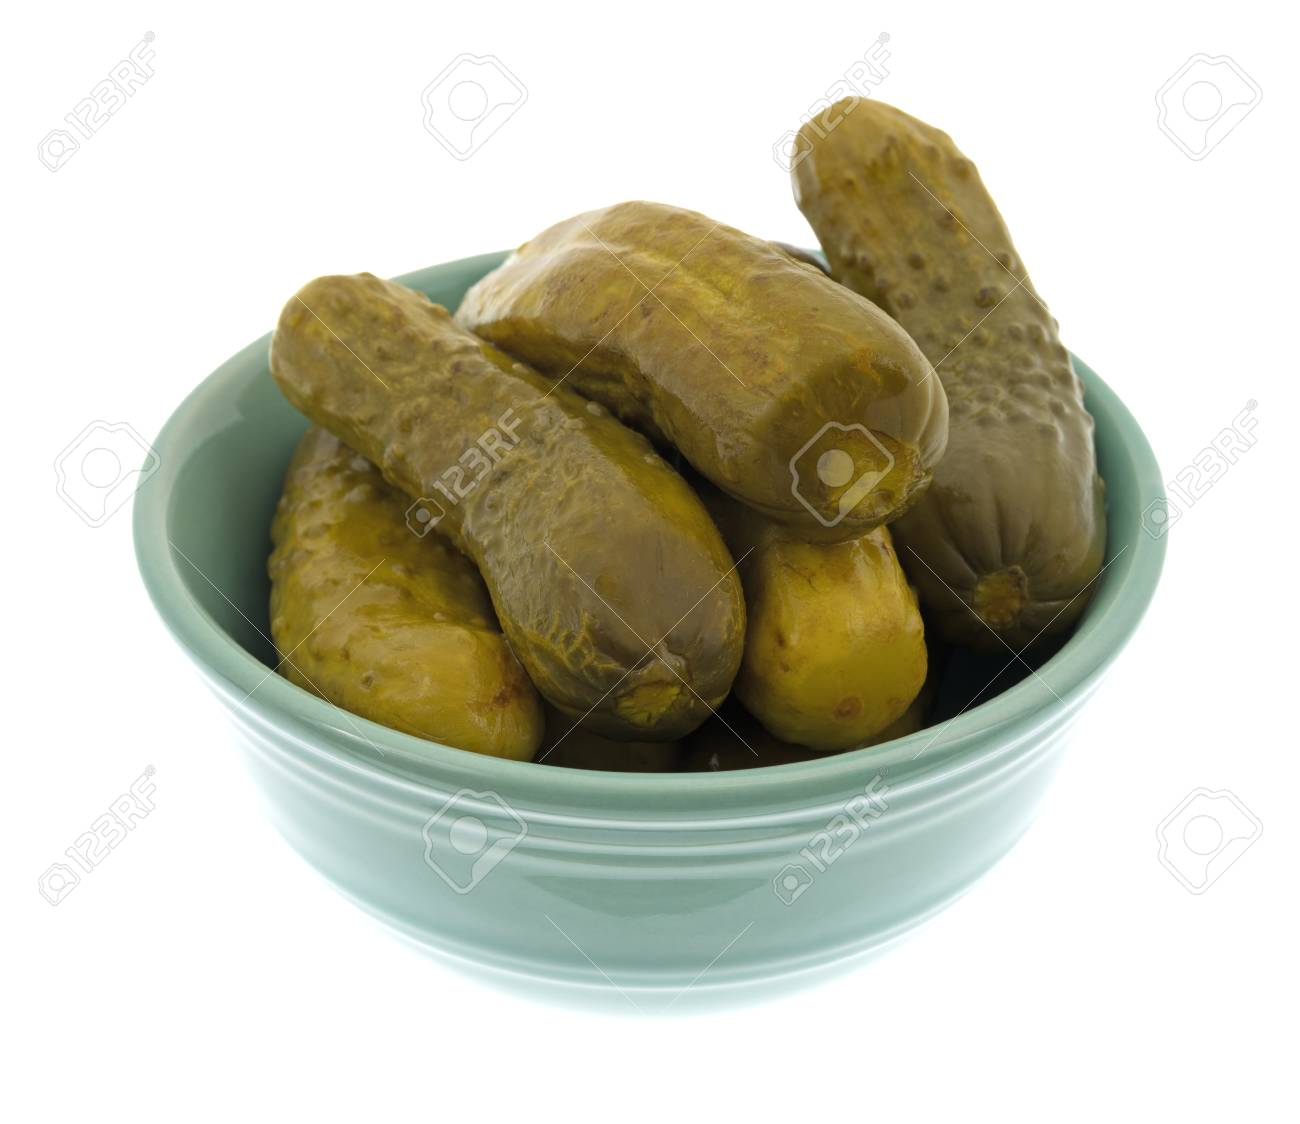 Kosher Pickles A Bowl Filled With Kosher Baby Dill Pickles Isolated On A White